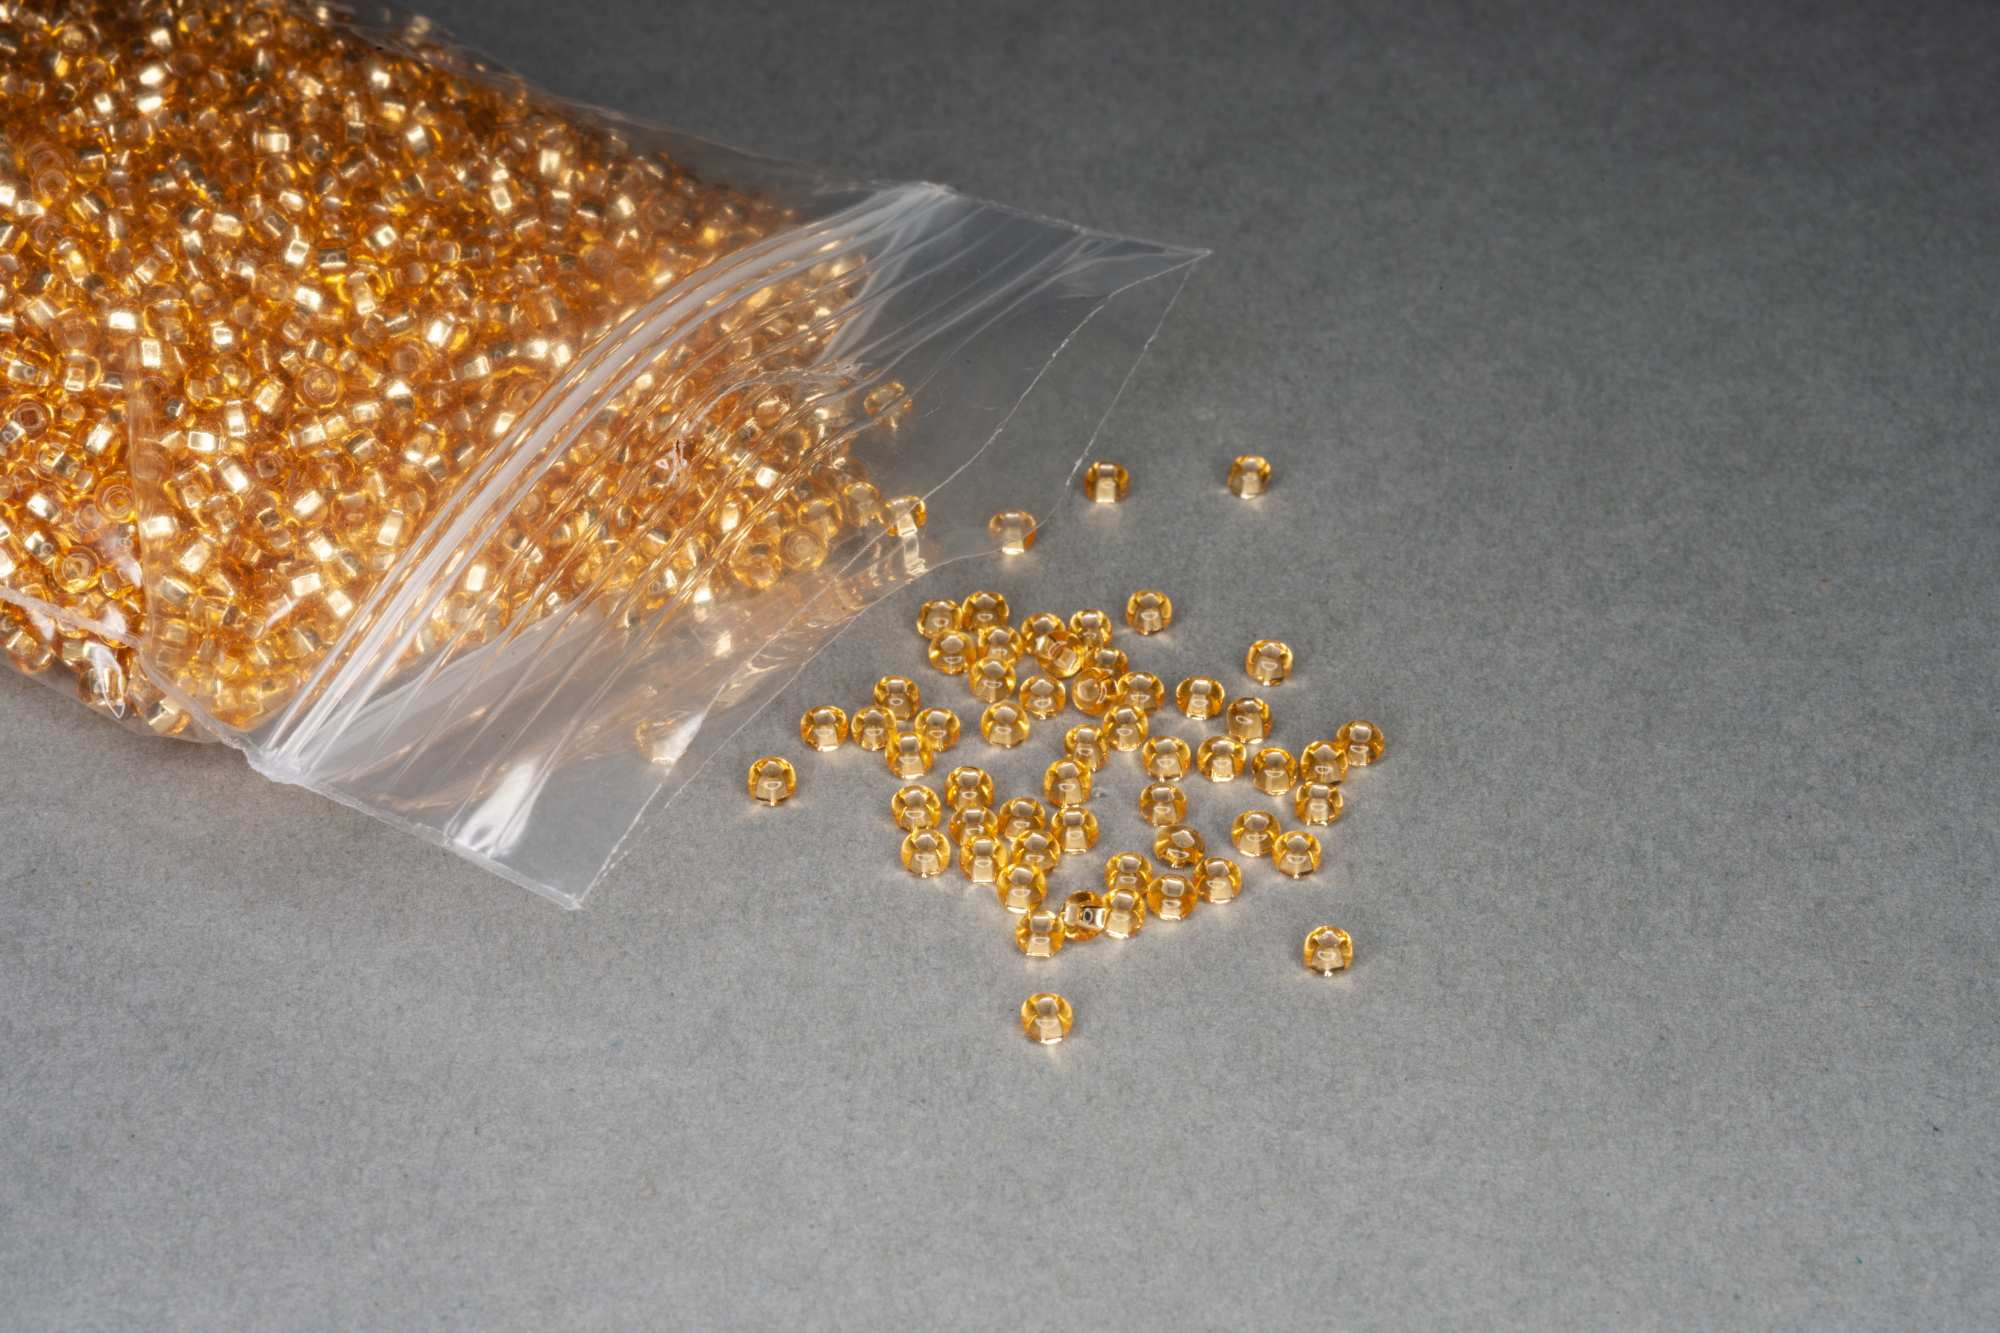 Silver Lined Gold Seed Rocaille Glass Beads, 30g